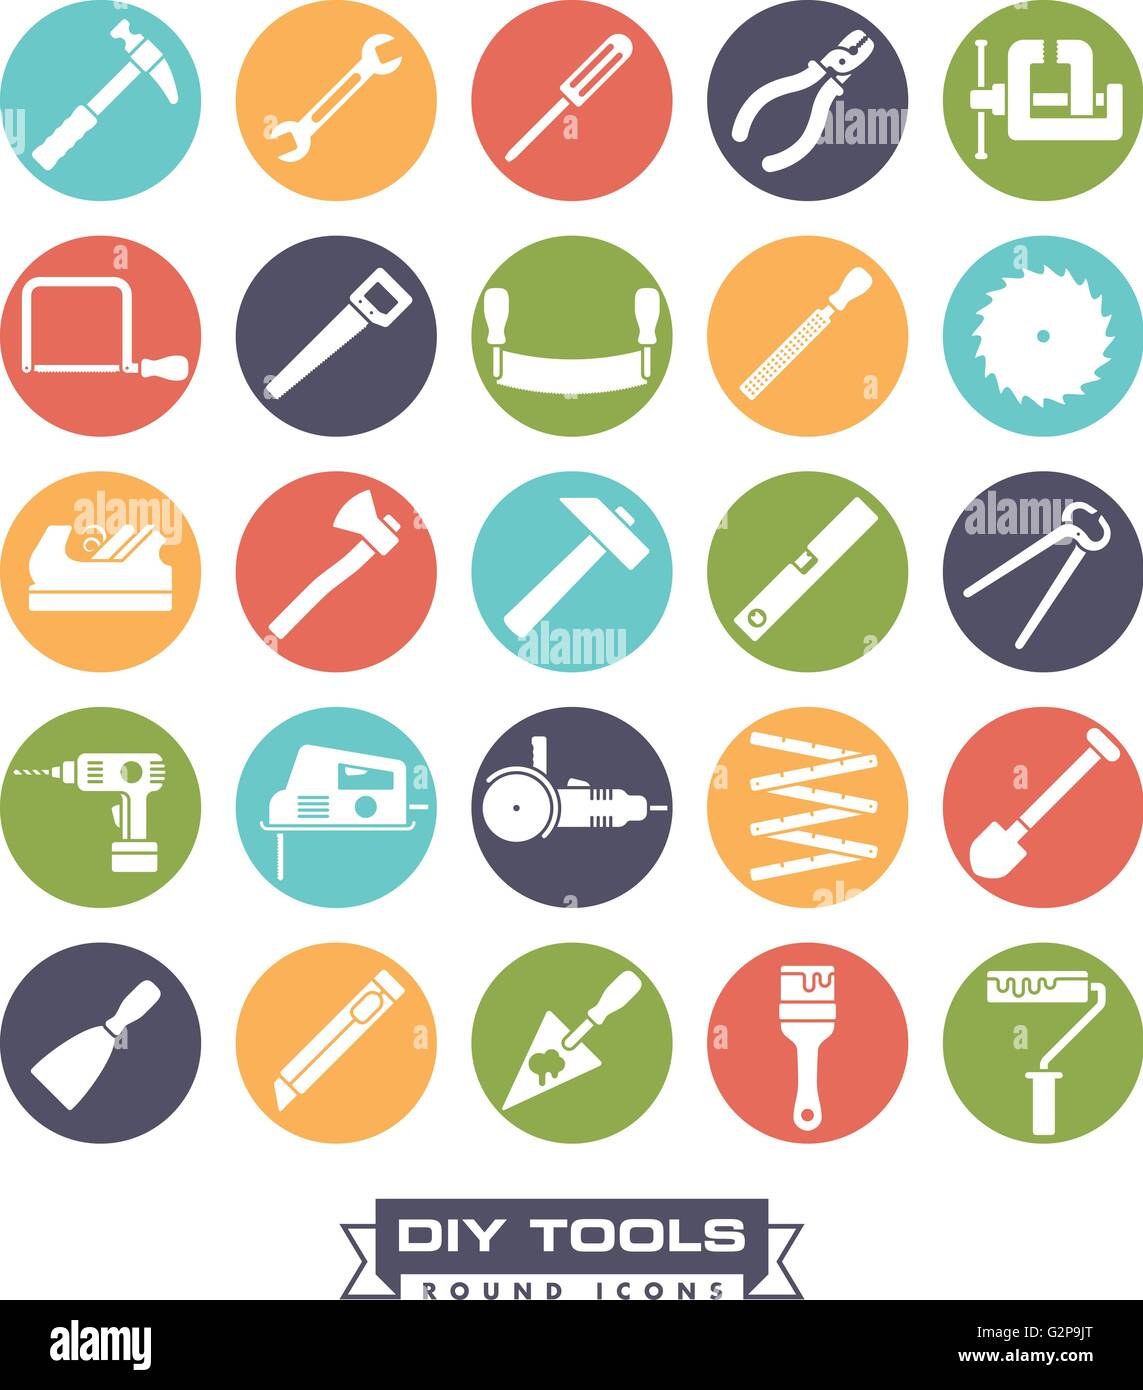 Collection of DIY and crafting tool vector icons, negative in colored circles - Stock Vector